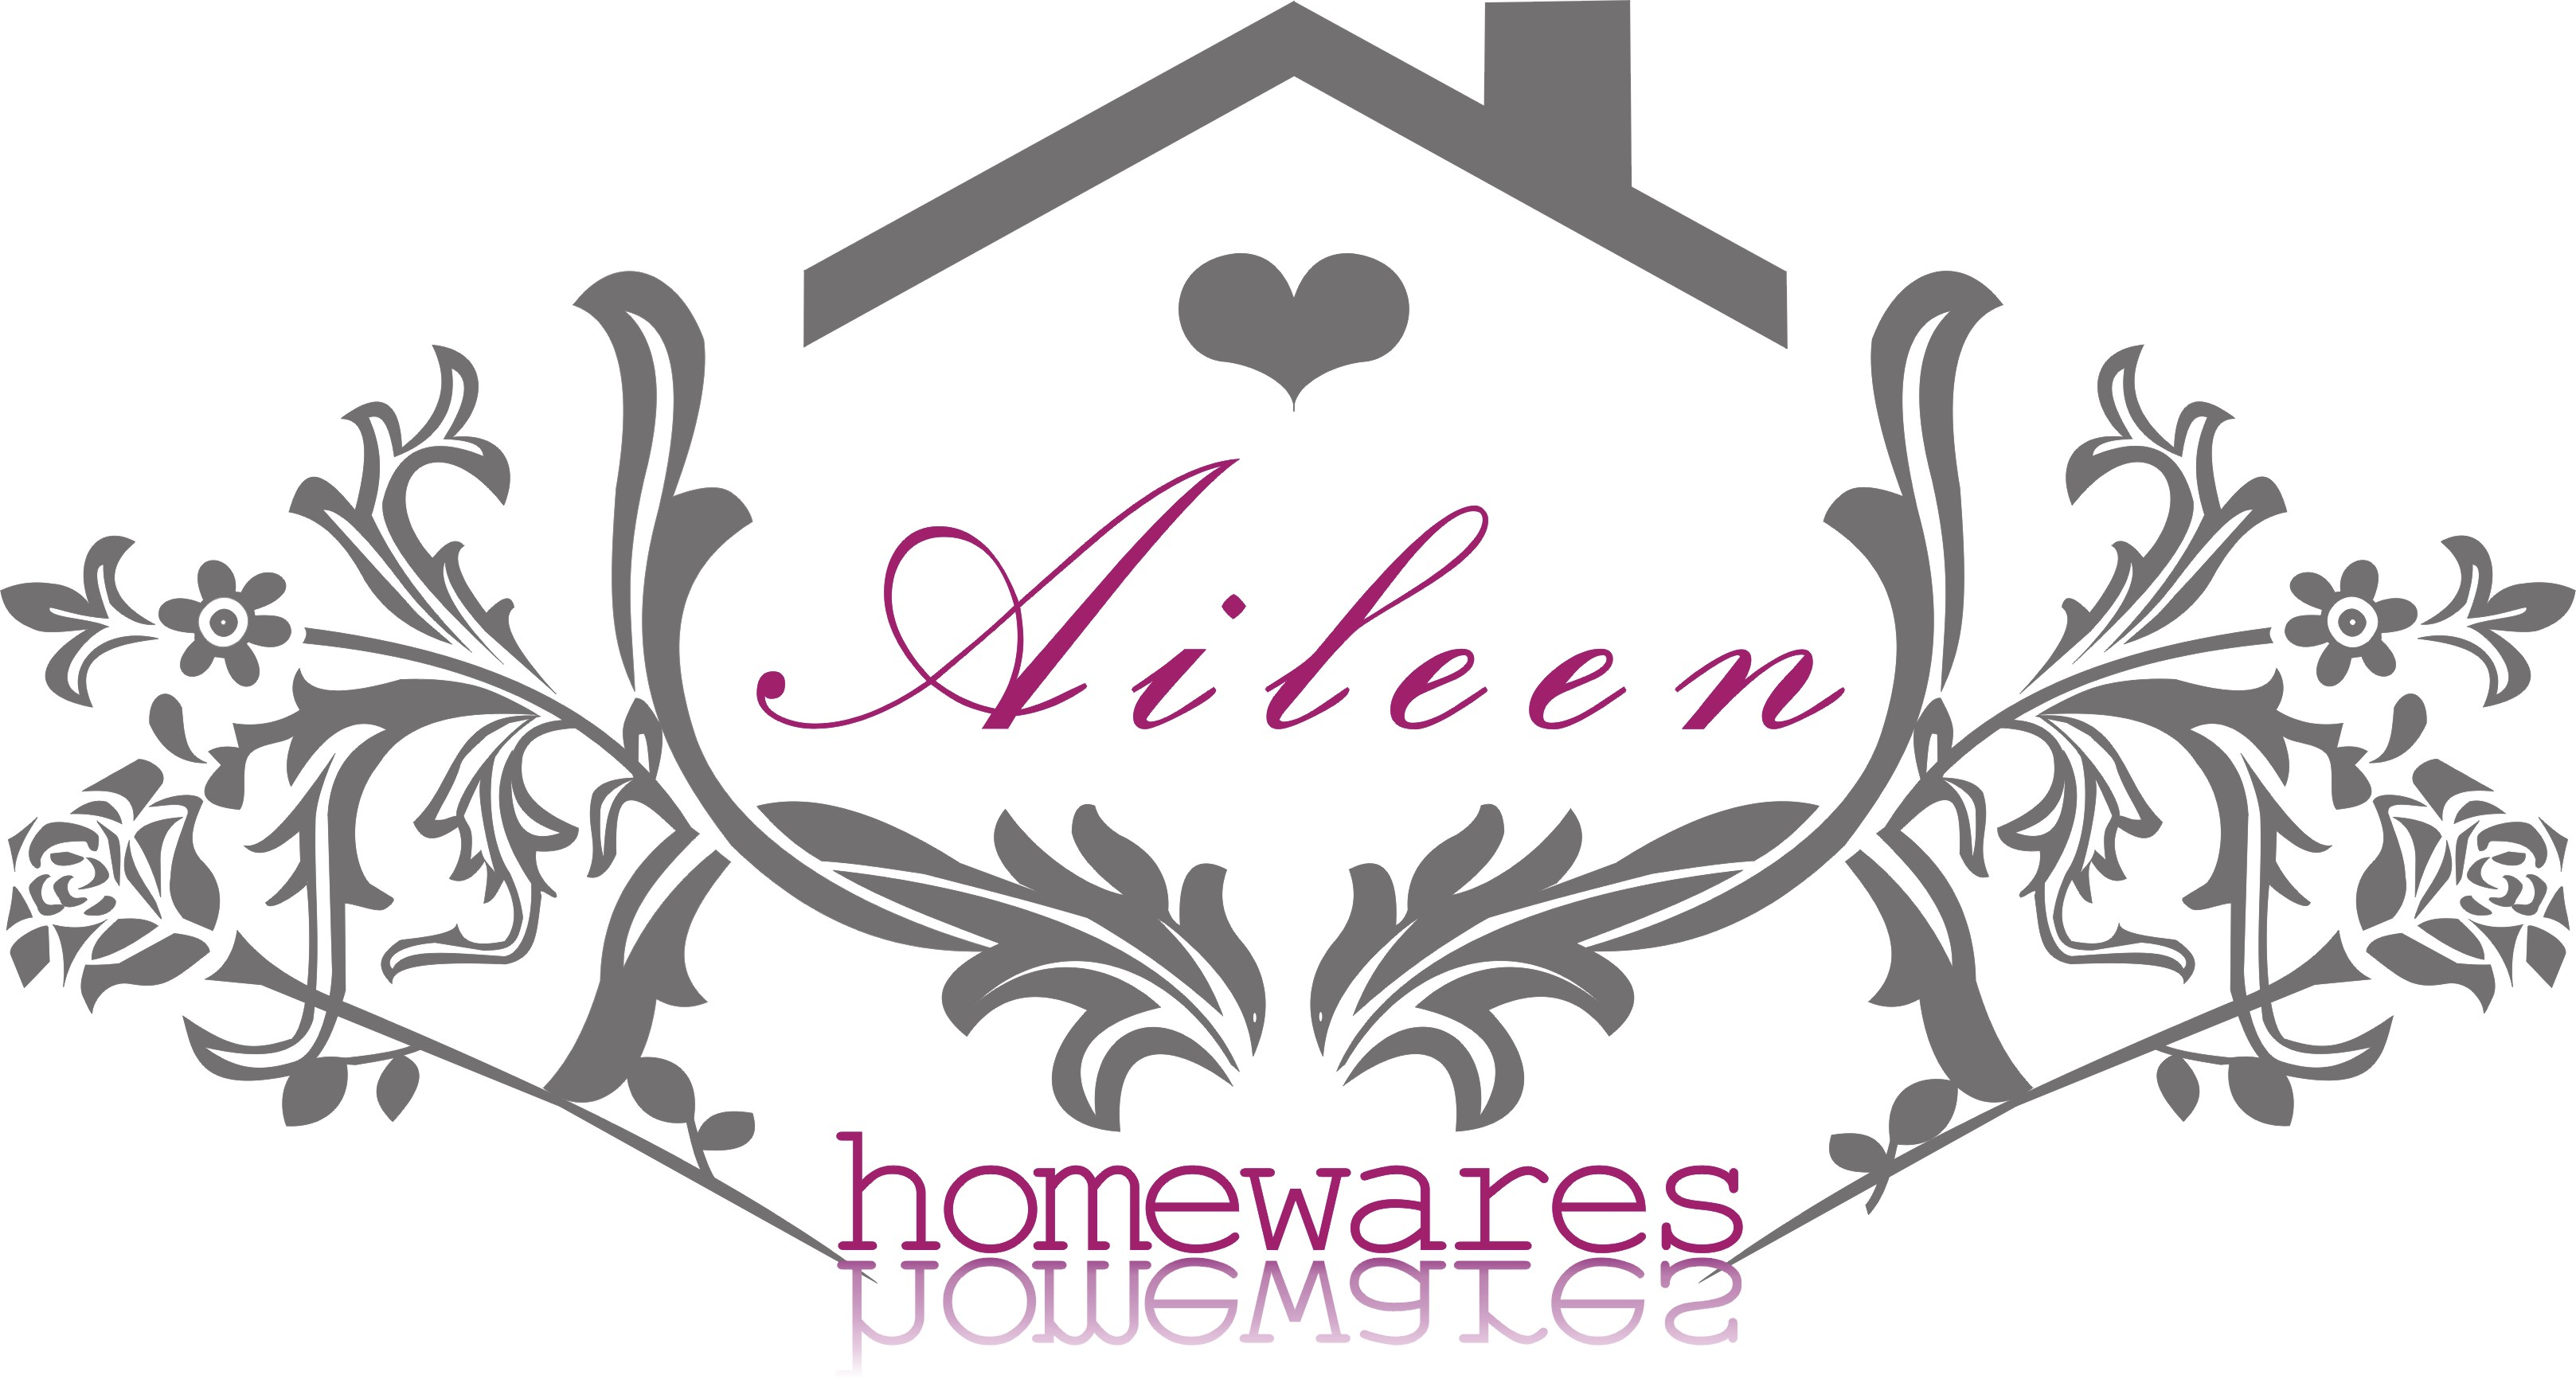 JIAXING AILEEN HOMEWARES DESIGN CO., LTD.